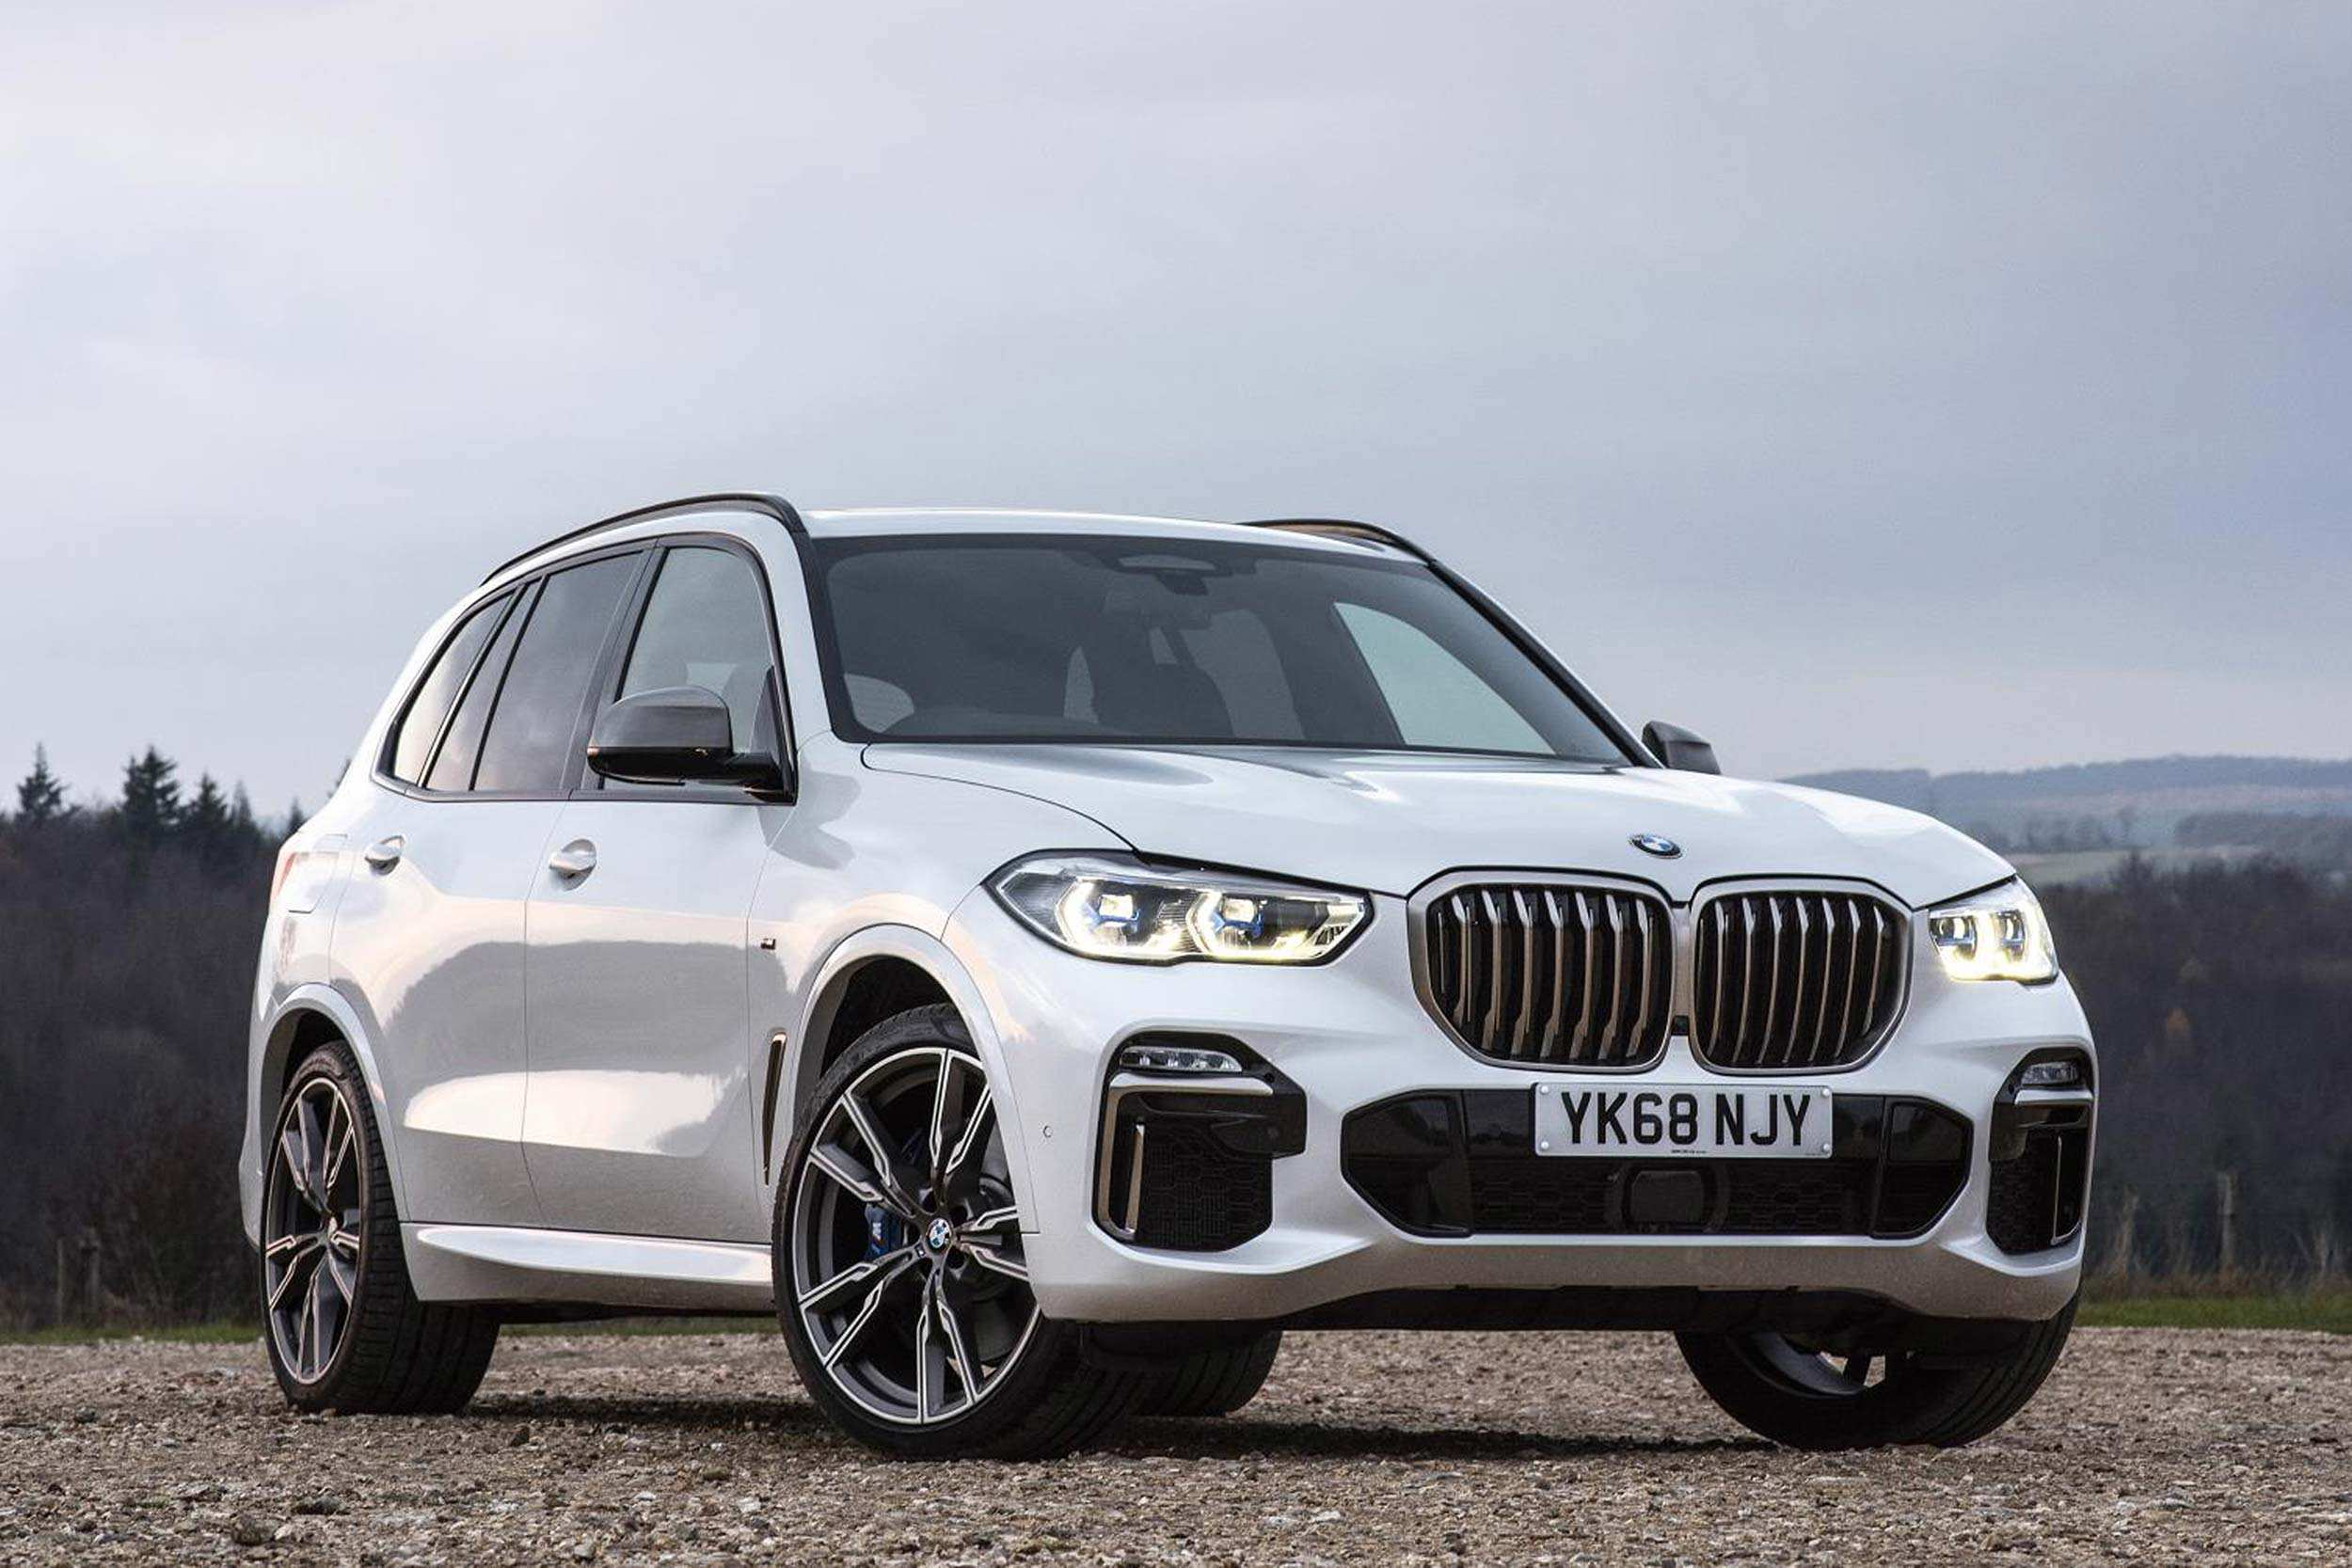 43 All New Bmw X5 2019 Price Usa First Drive Price Performance And Review Speed Test for Bmw X5 2019 Price Usa First Drive Price Performance And Review